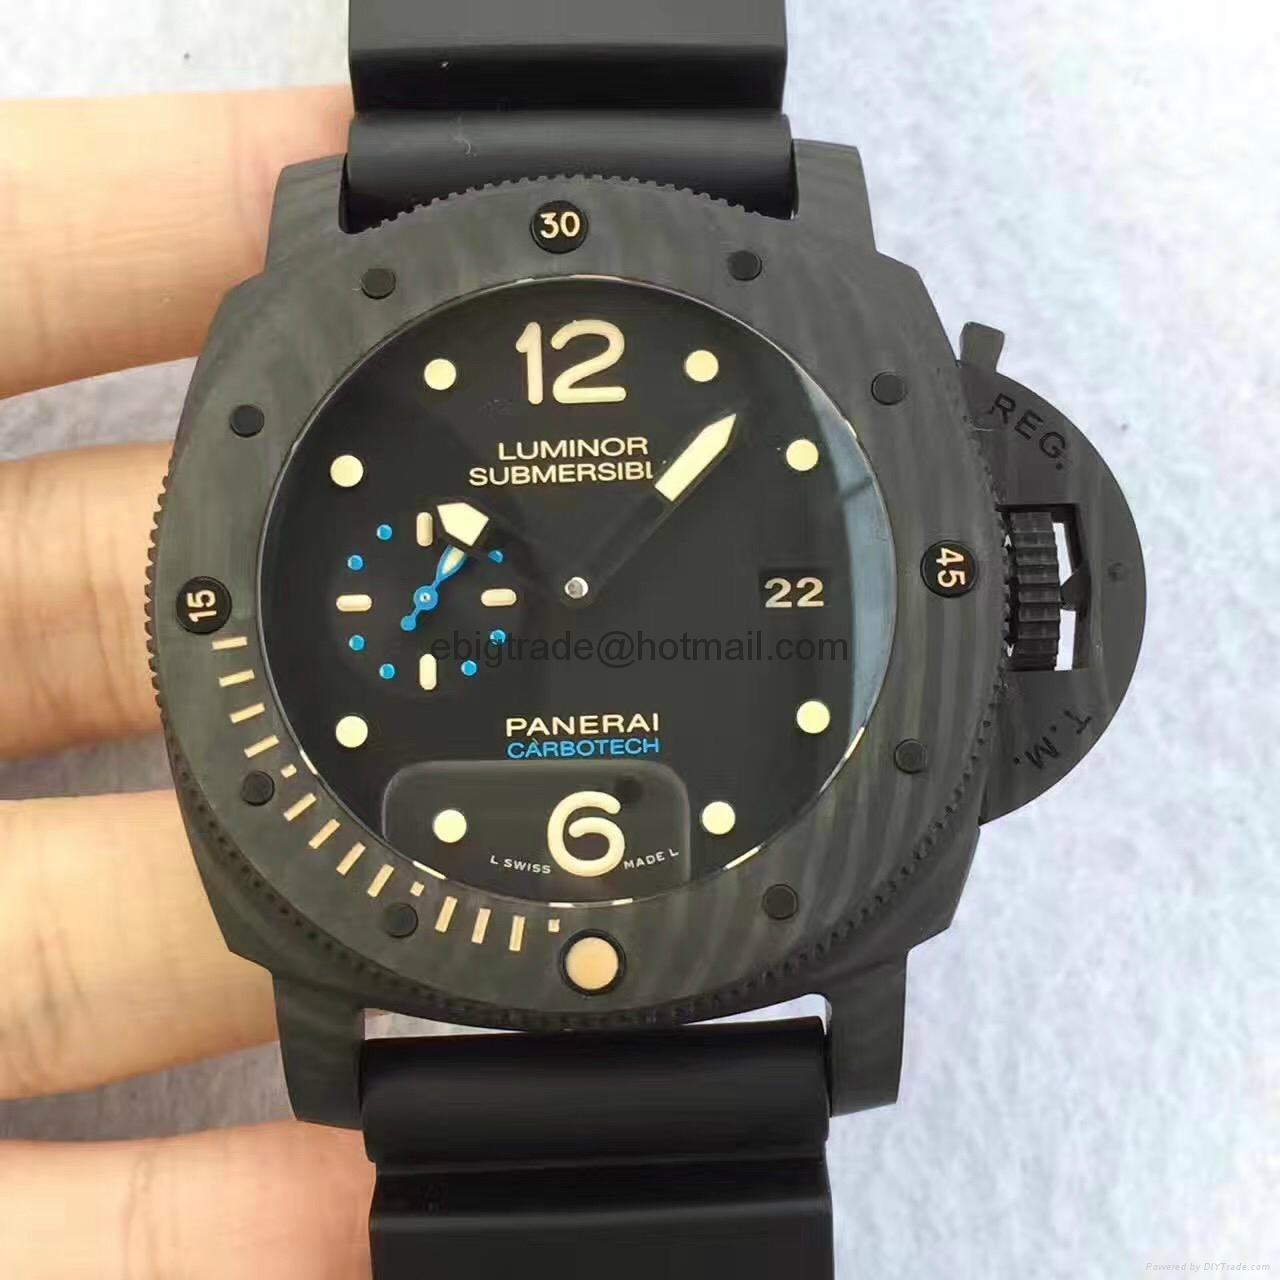 Panerai watches